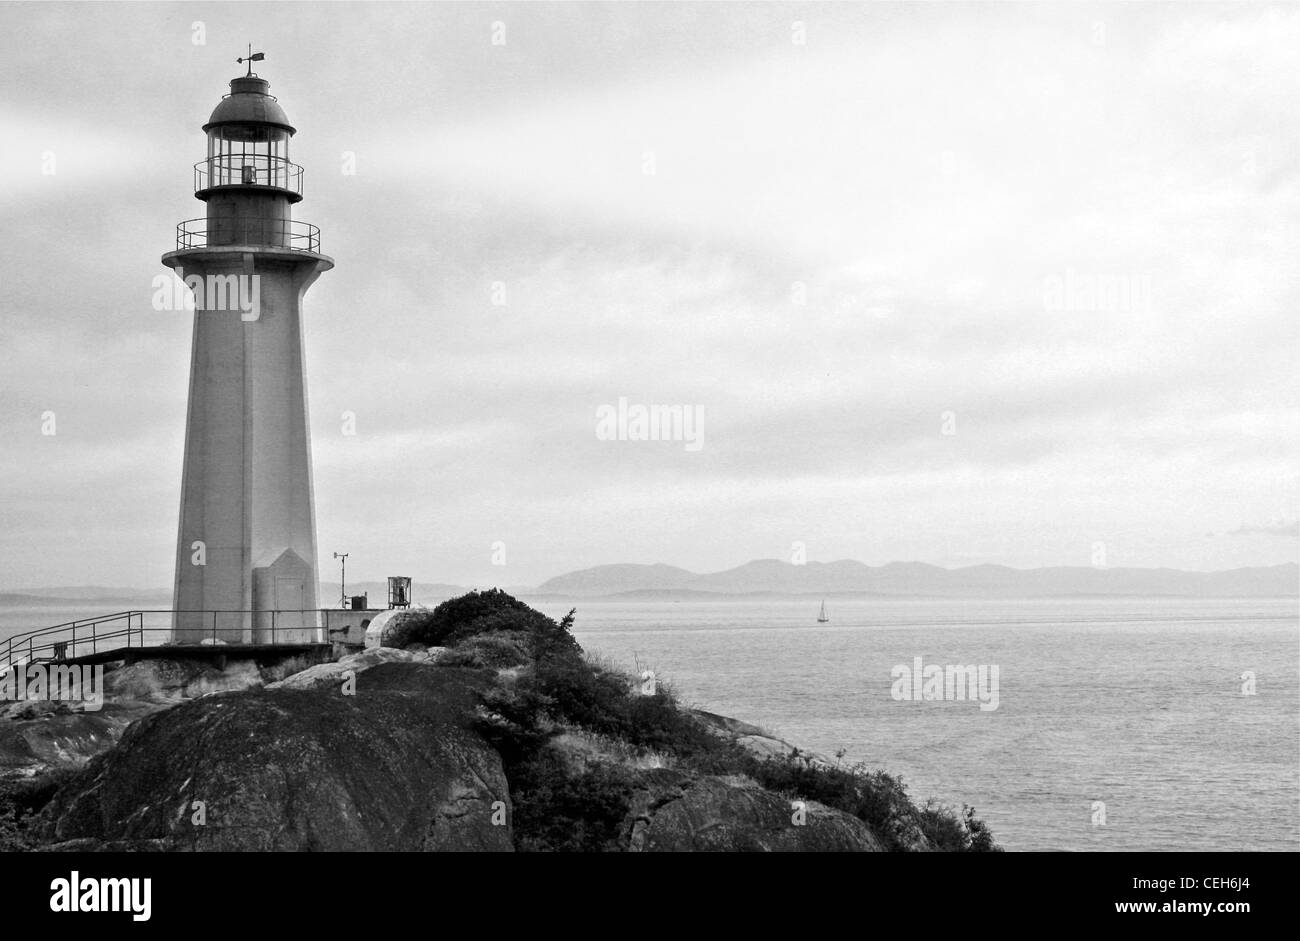 Lighthouse with Searchlight - Black and White Photo of ...